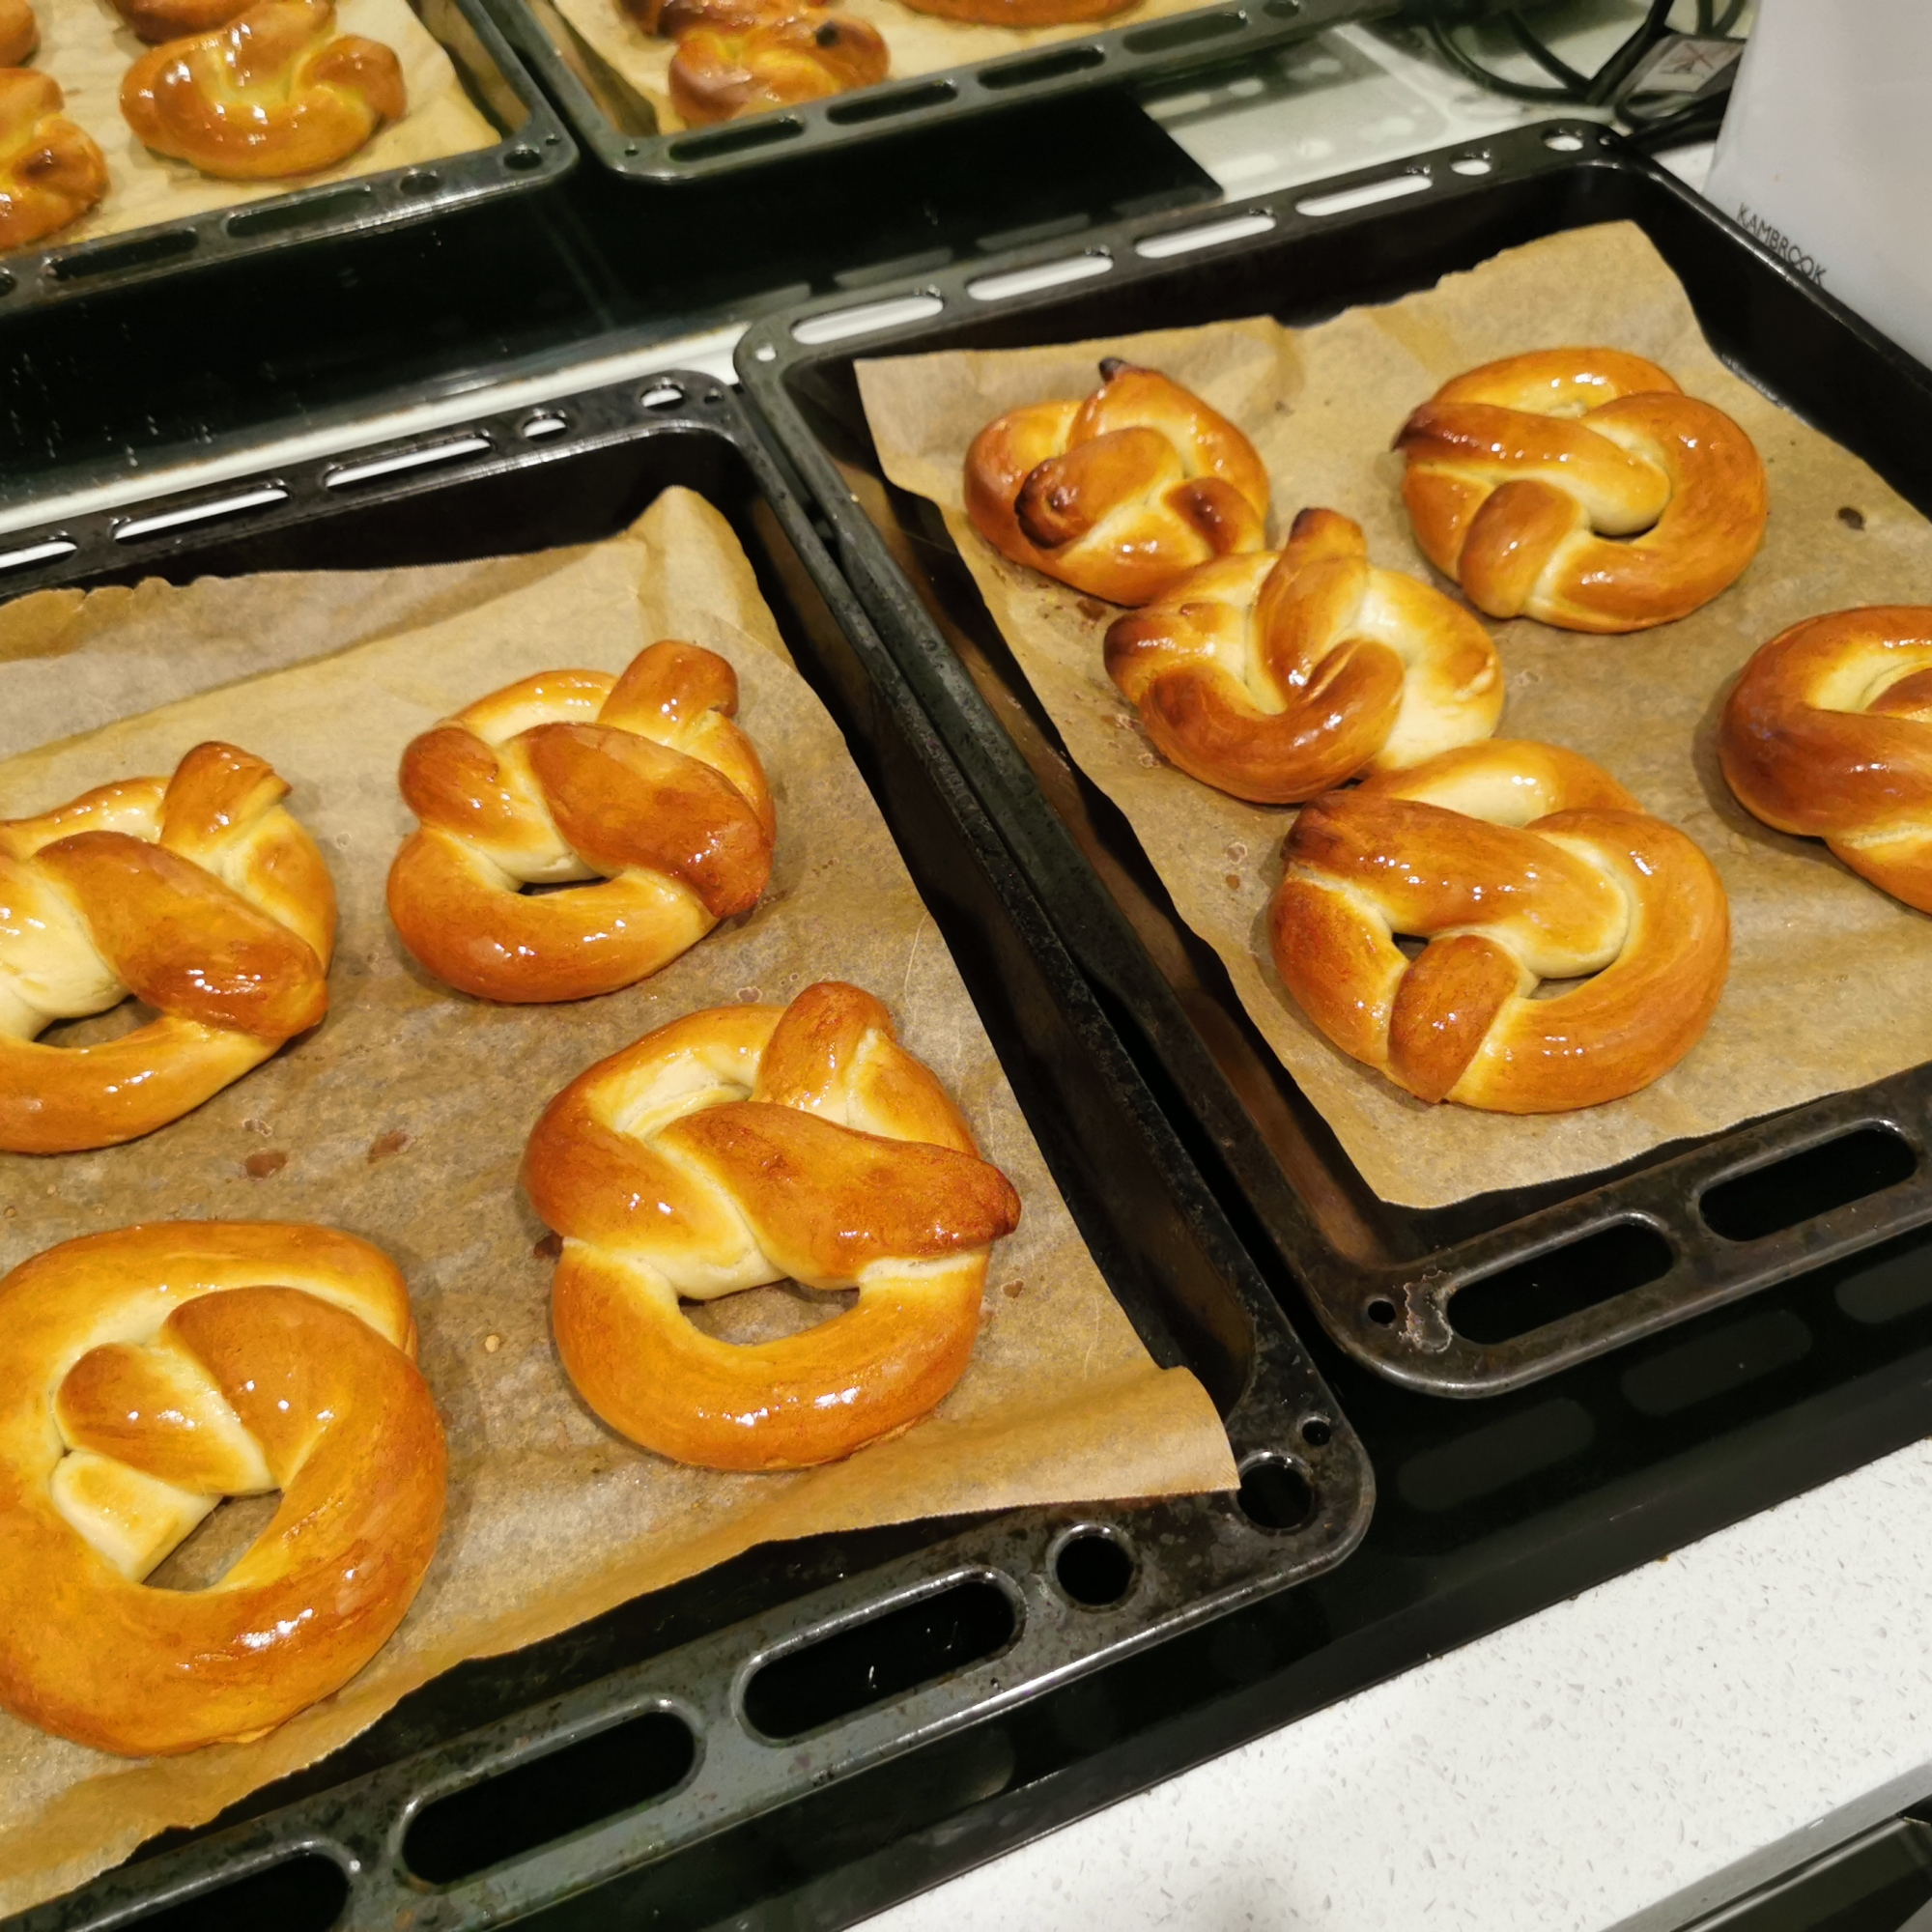 9 Freshly baked soft pretzels sit on baking trays on top of the stove